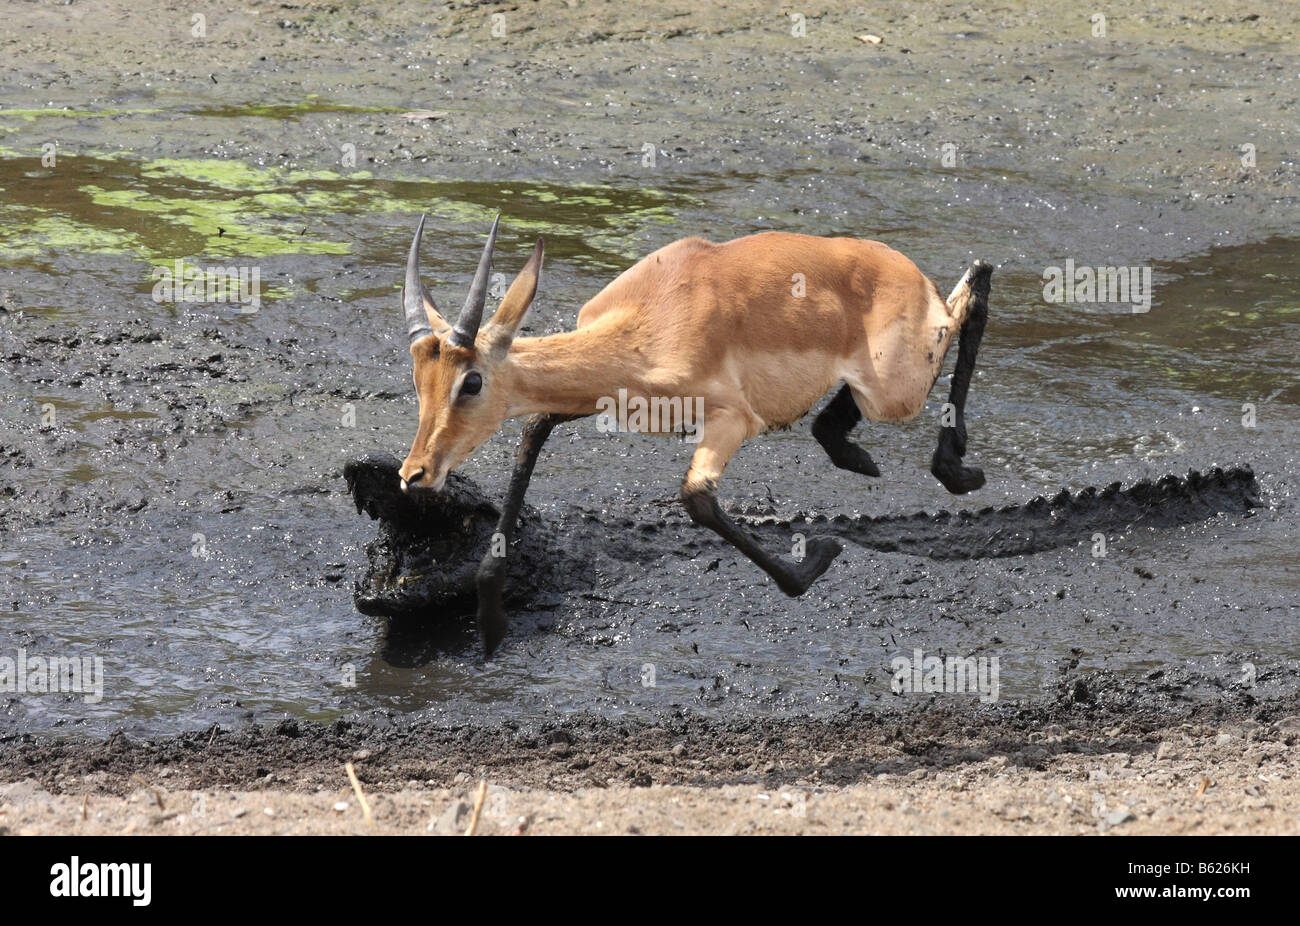 impala escaping from a nile crocodile attack - Stock Image